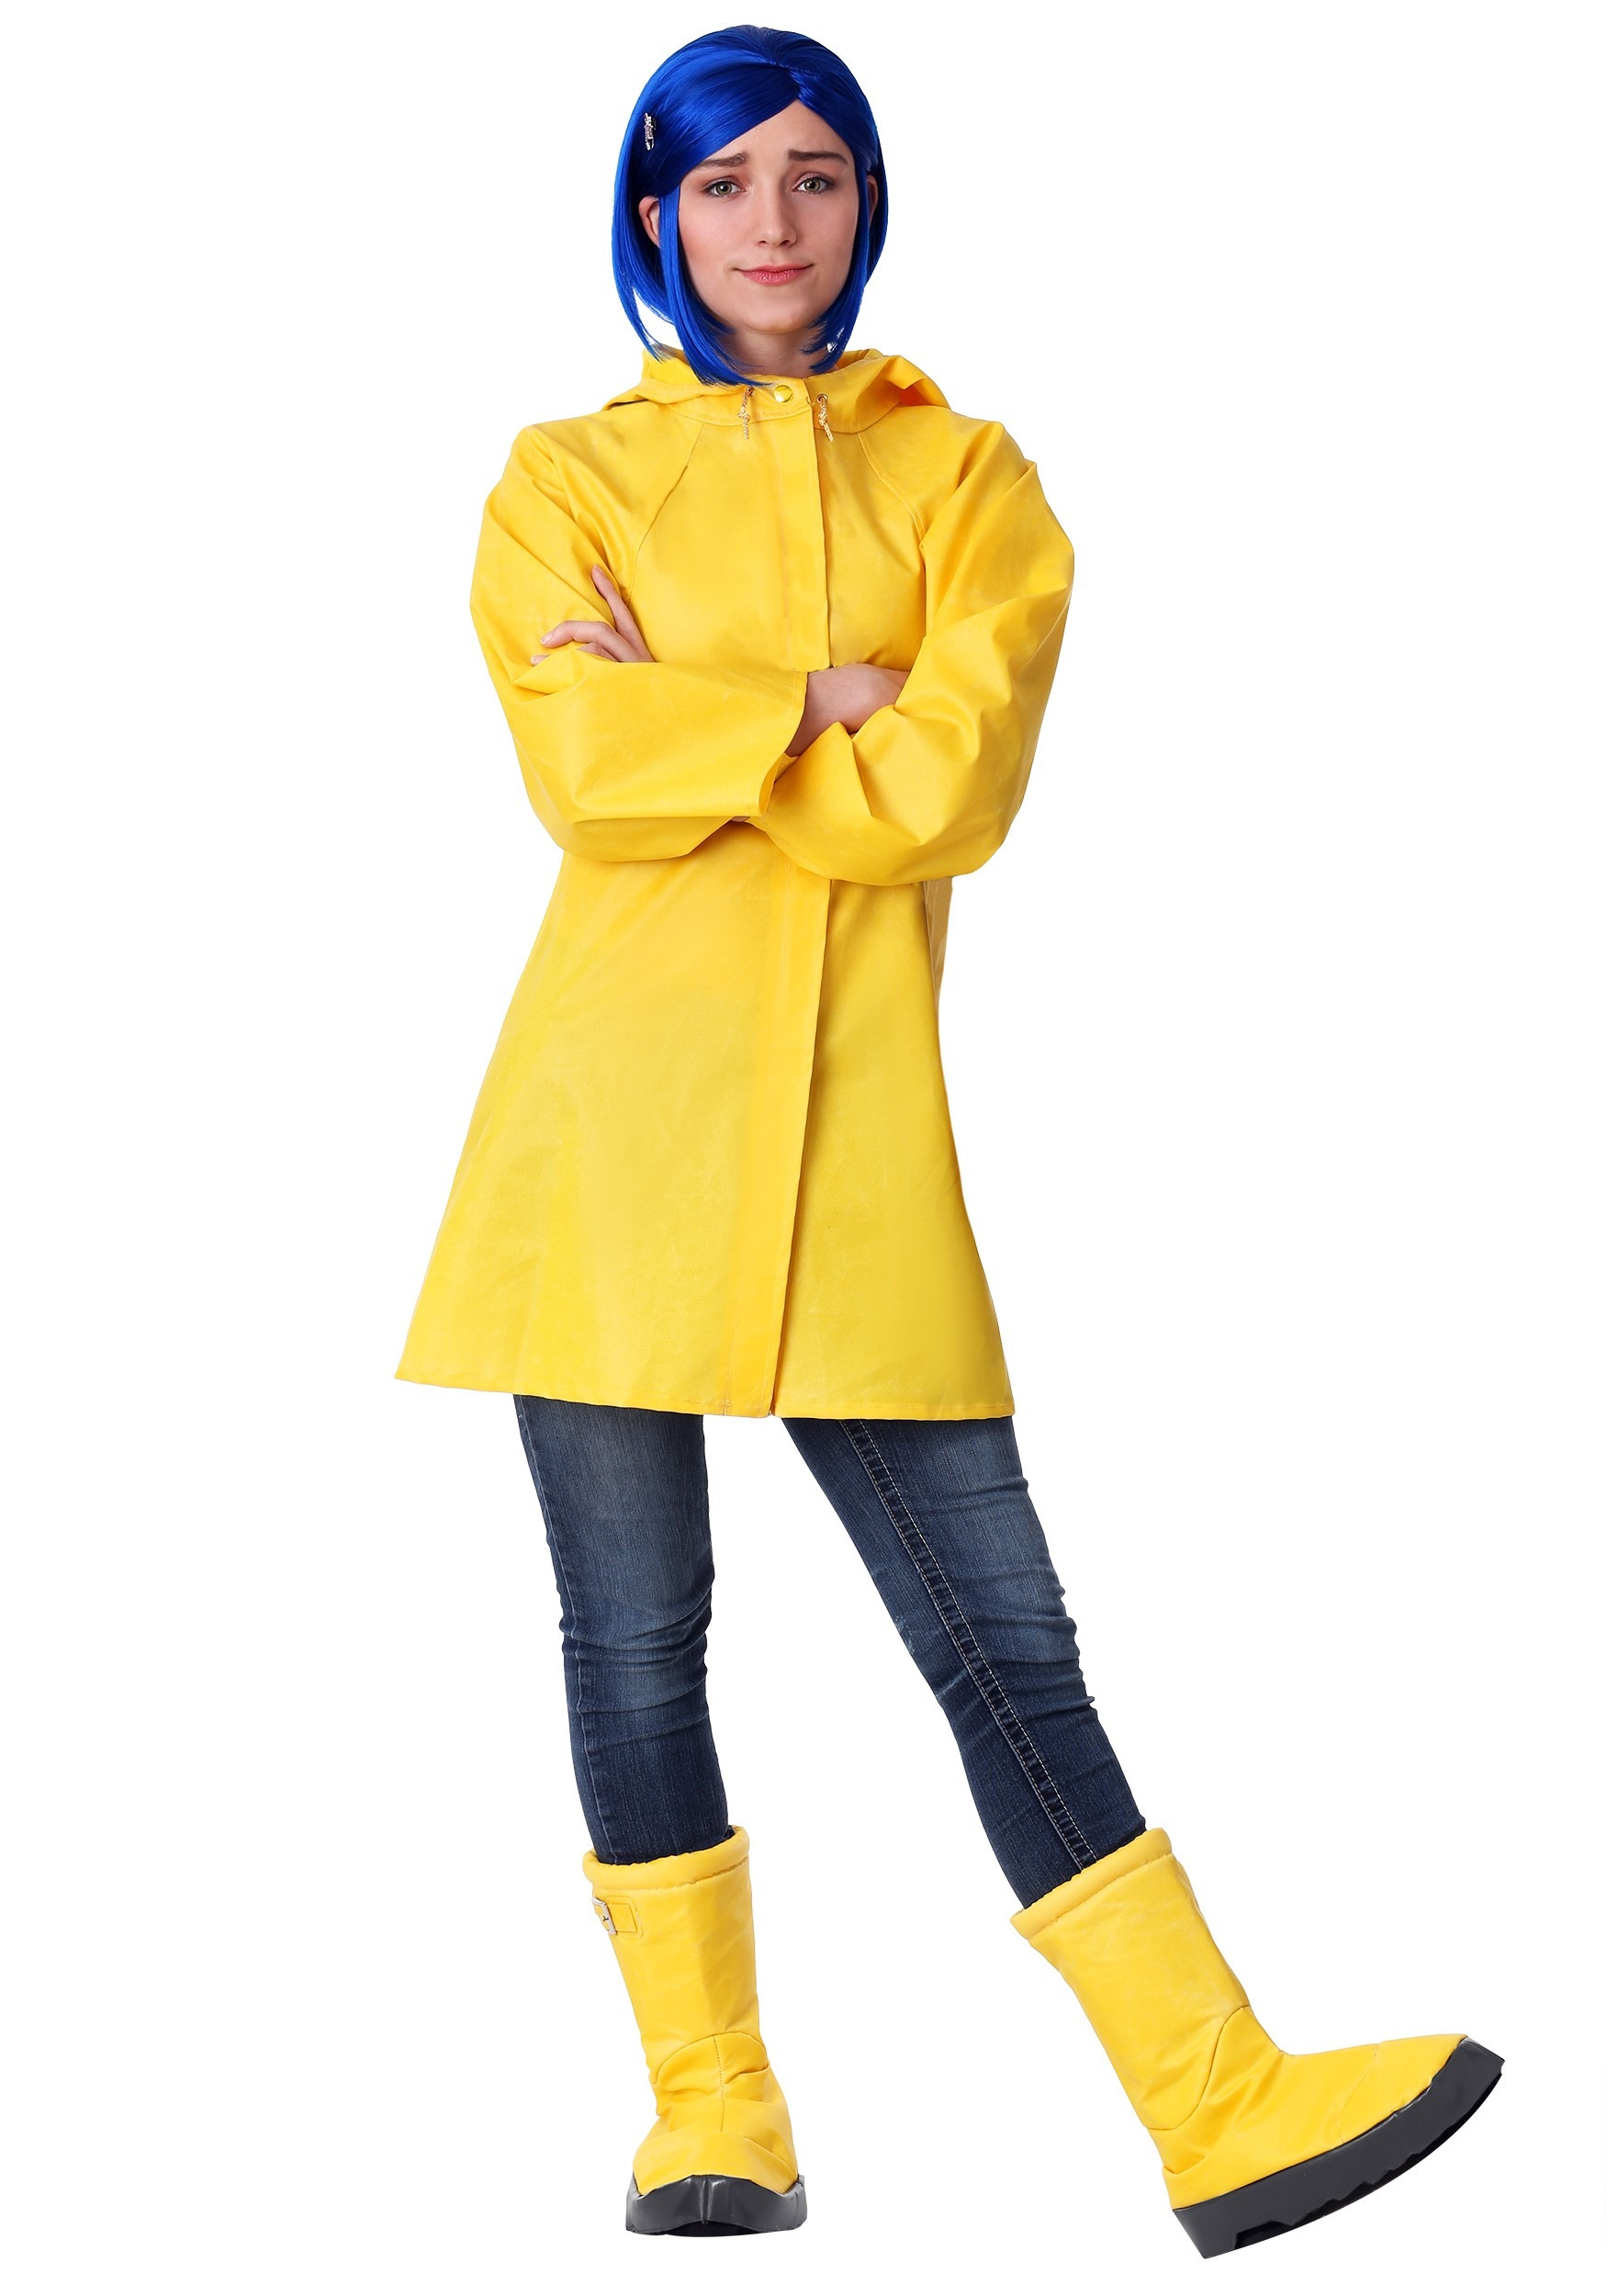 Coraline Costume from Laika